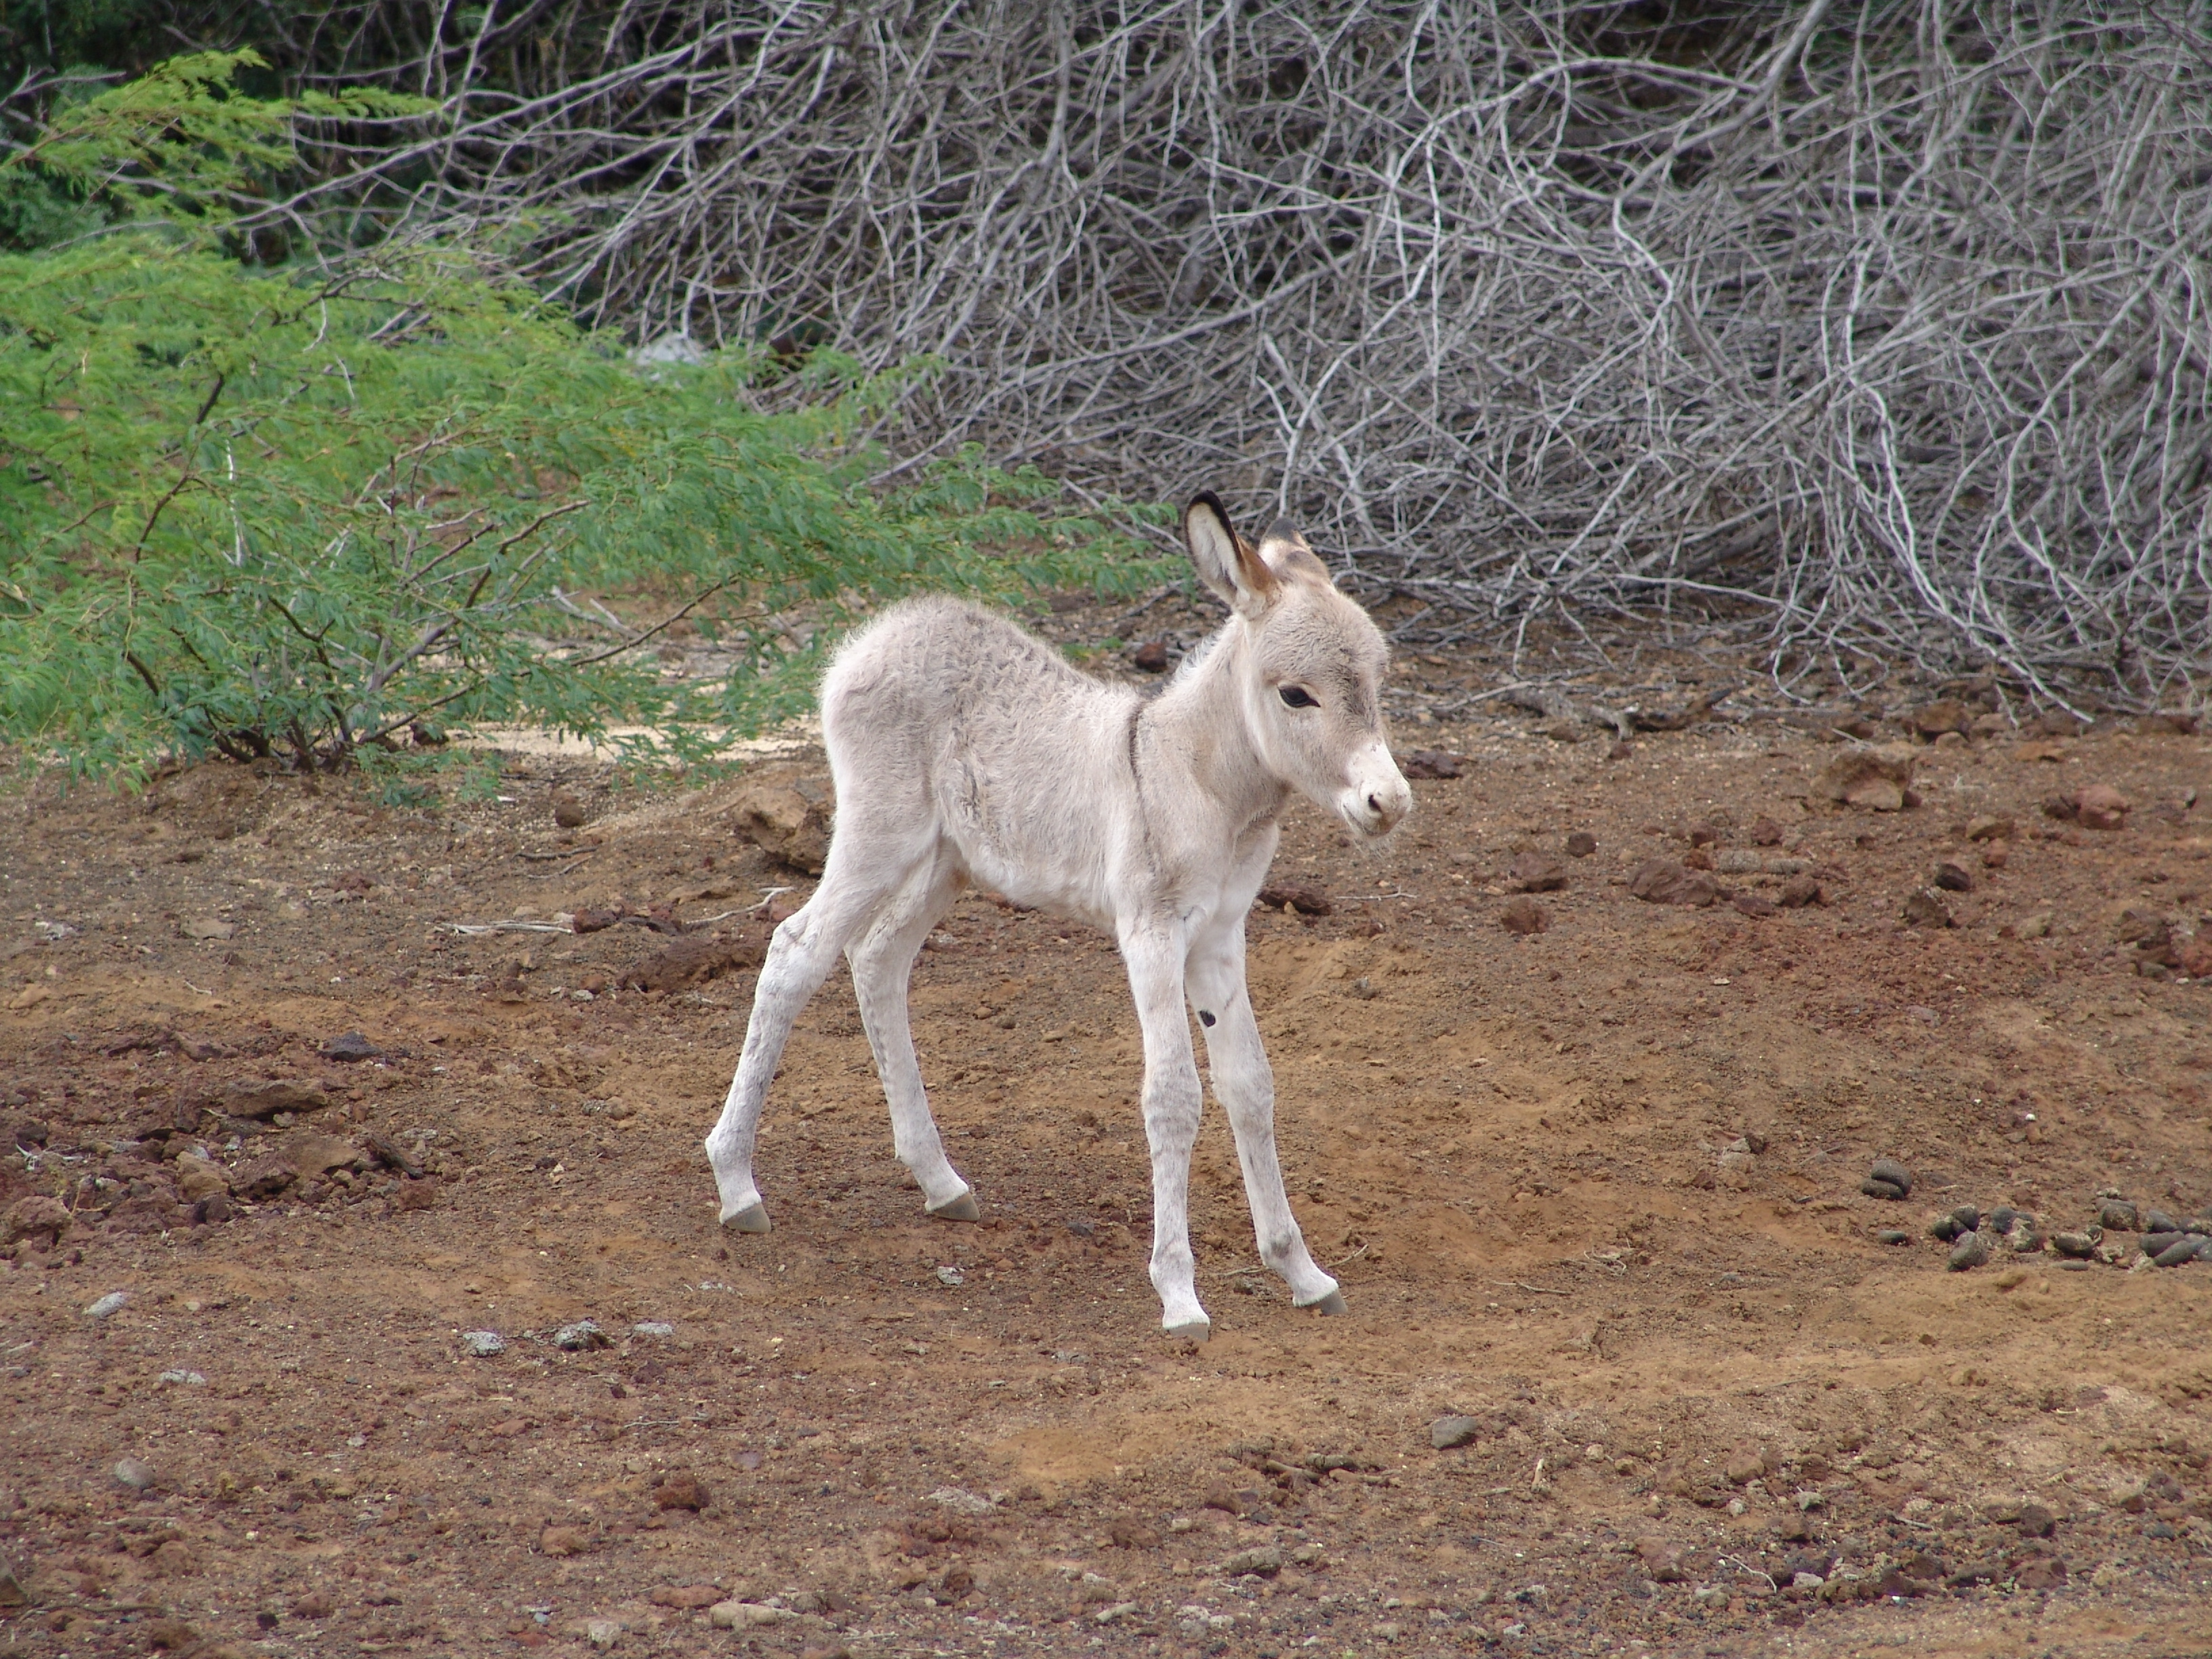 Image of Ass -- Feral donkey